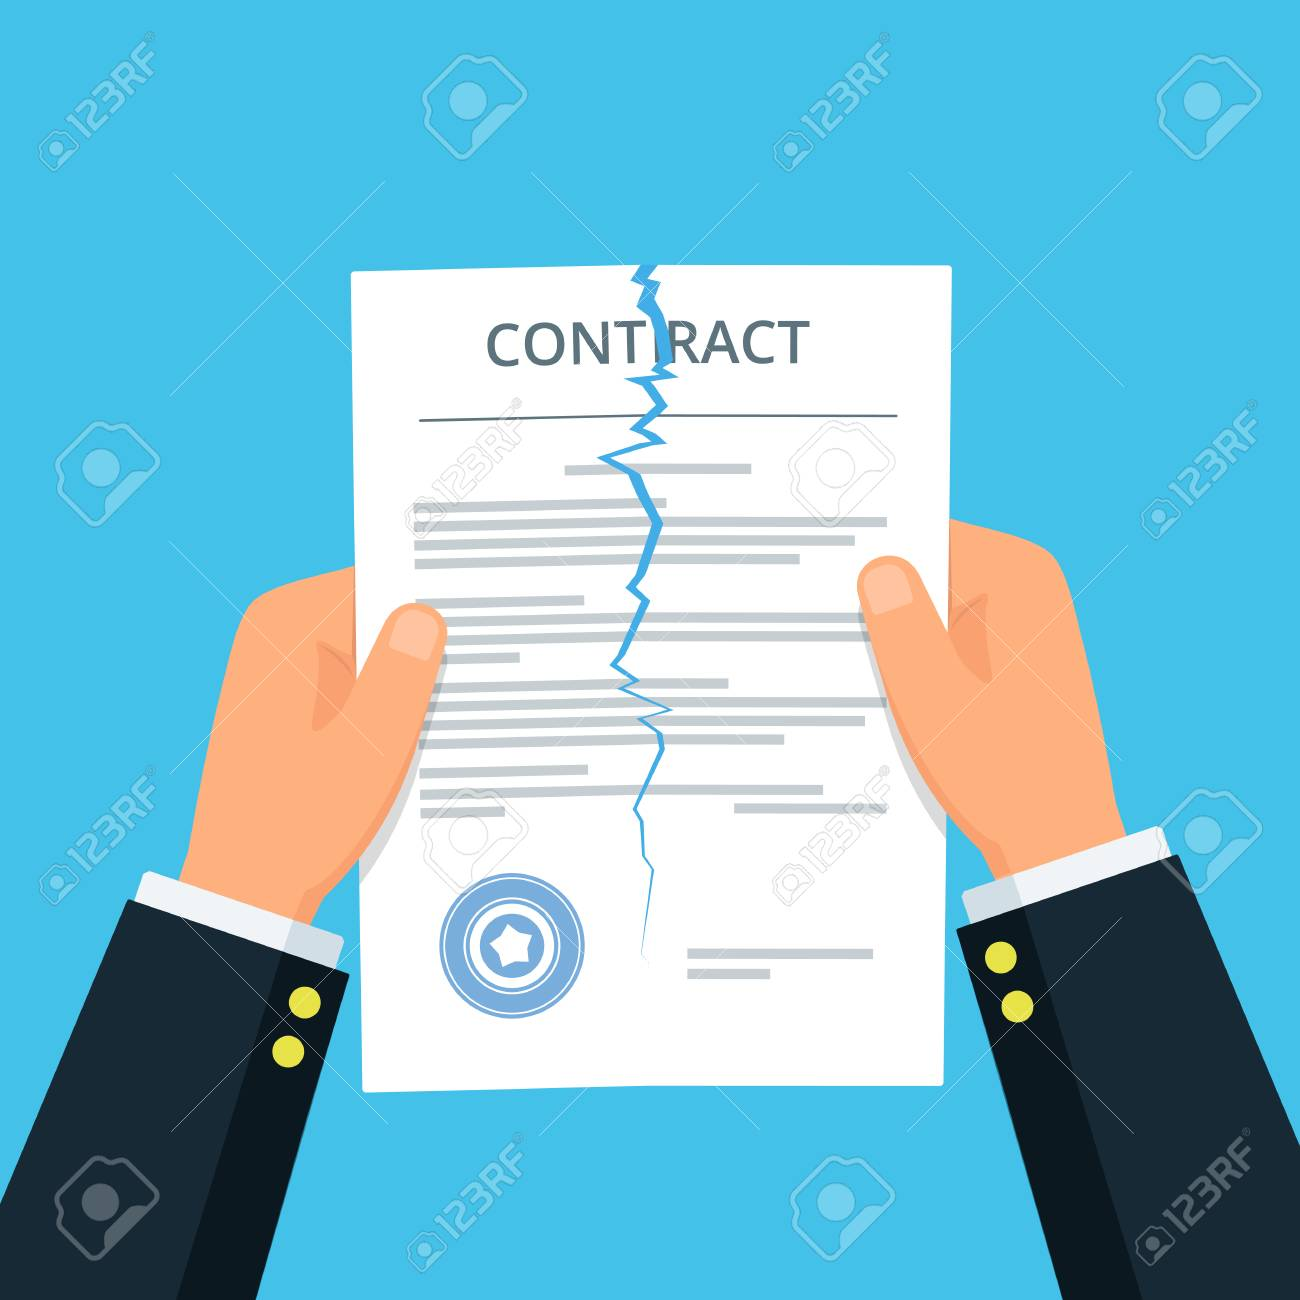 Close-up of person hands ripping up a contract. Terminated contract. Business concept of disagreement. Break the rules. Vector illustration in flat style. - 124593124